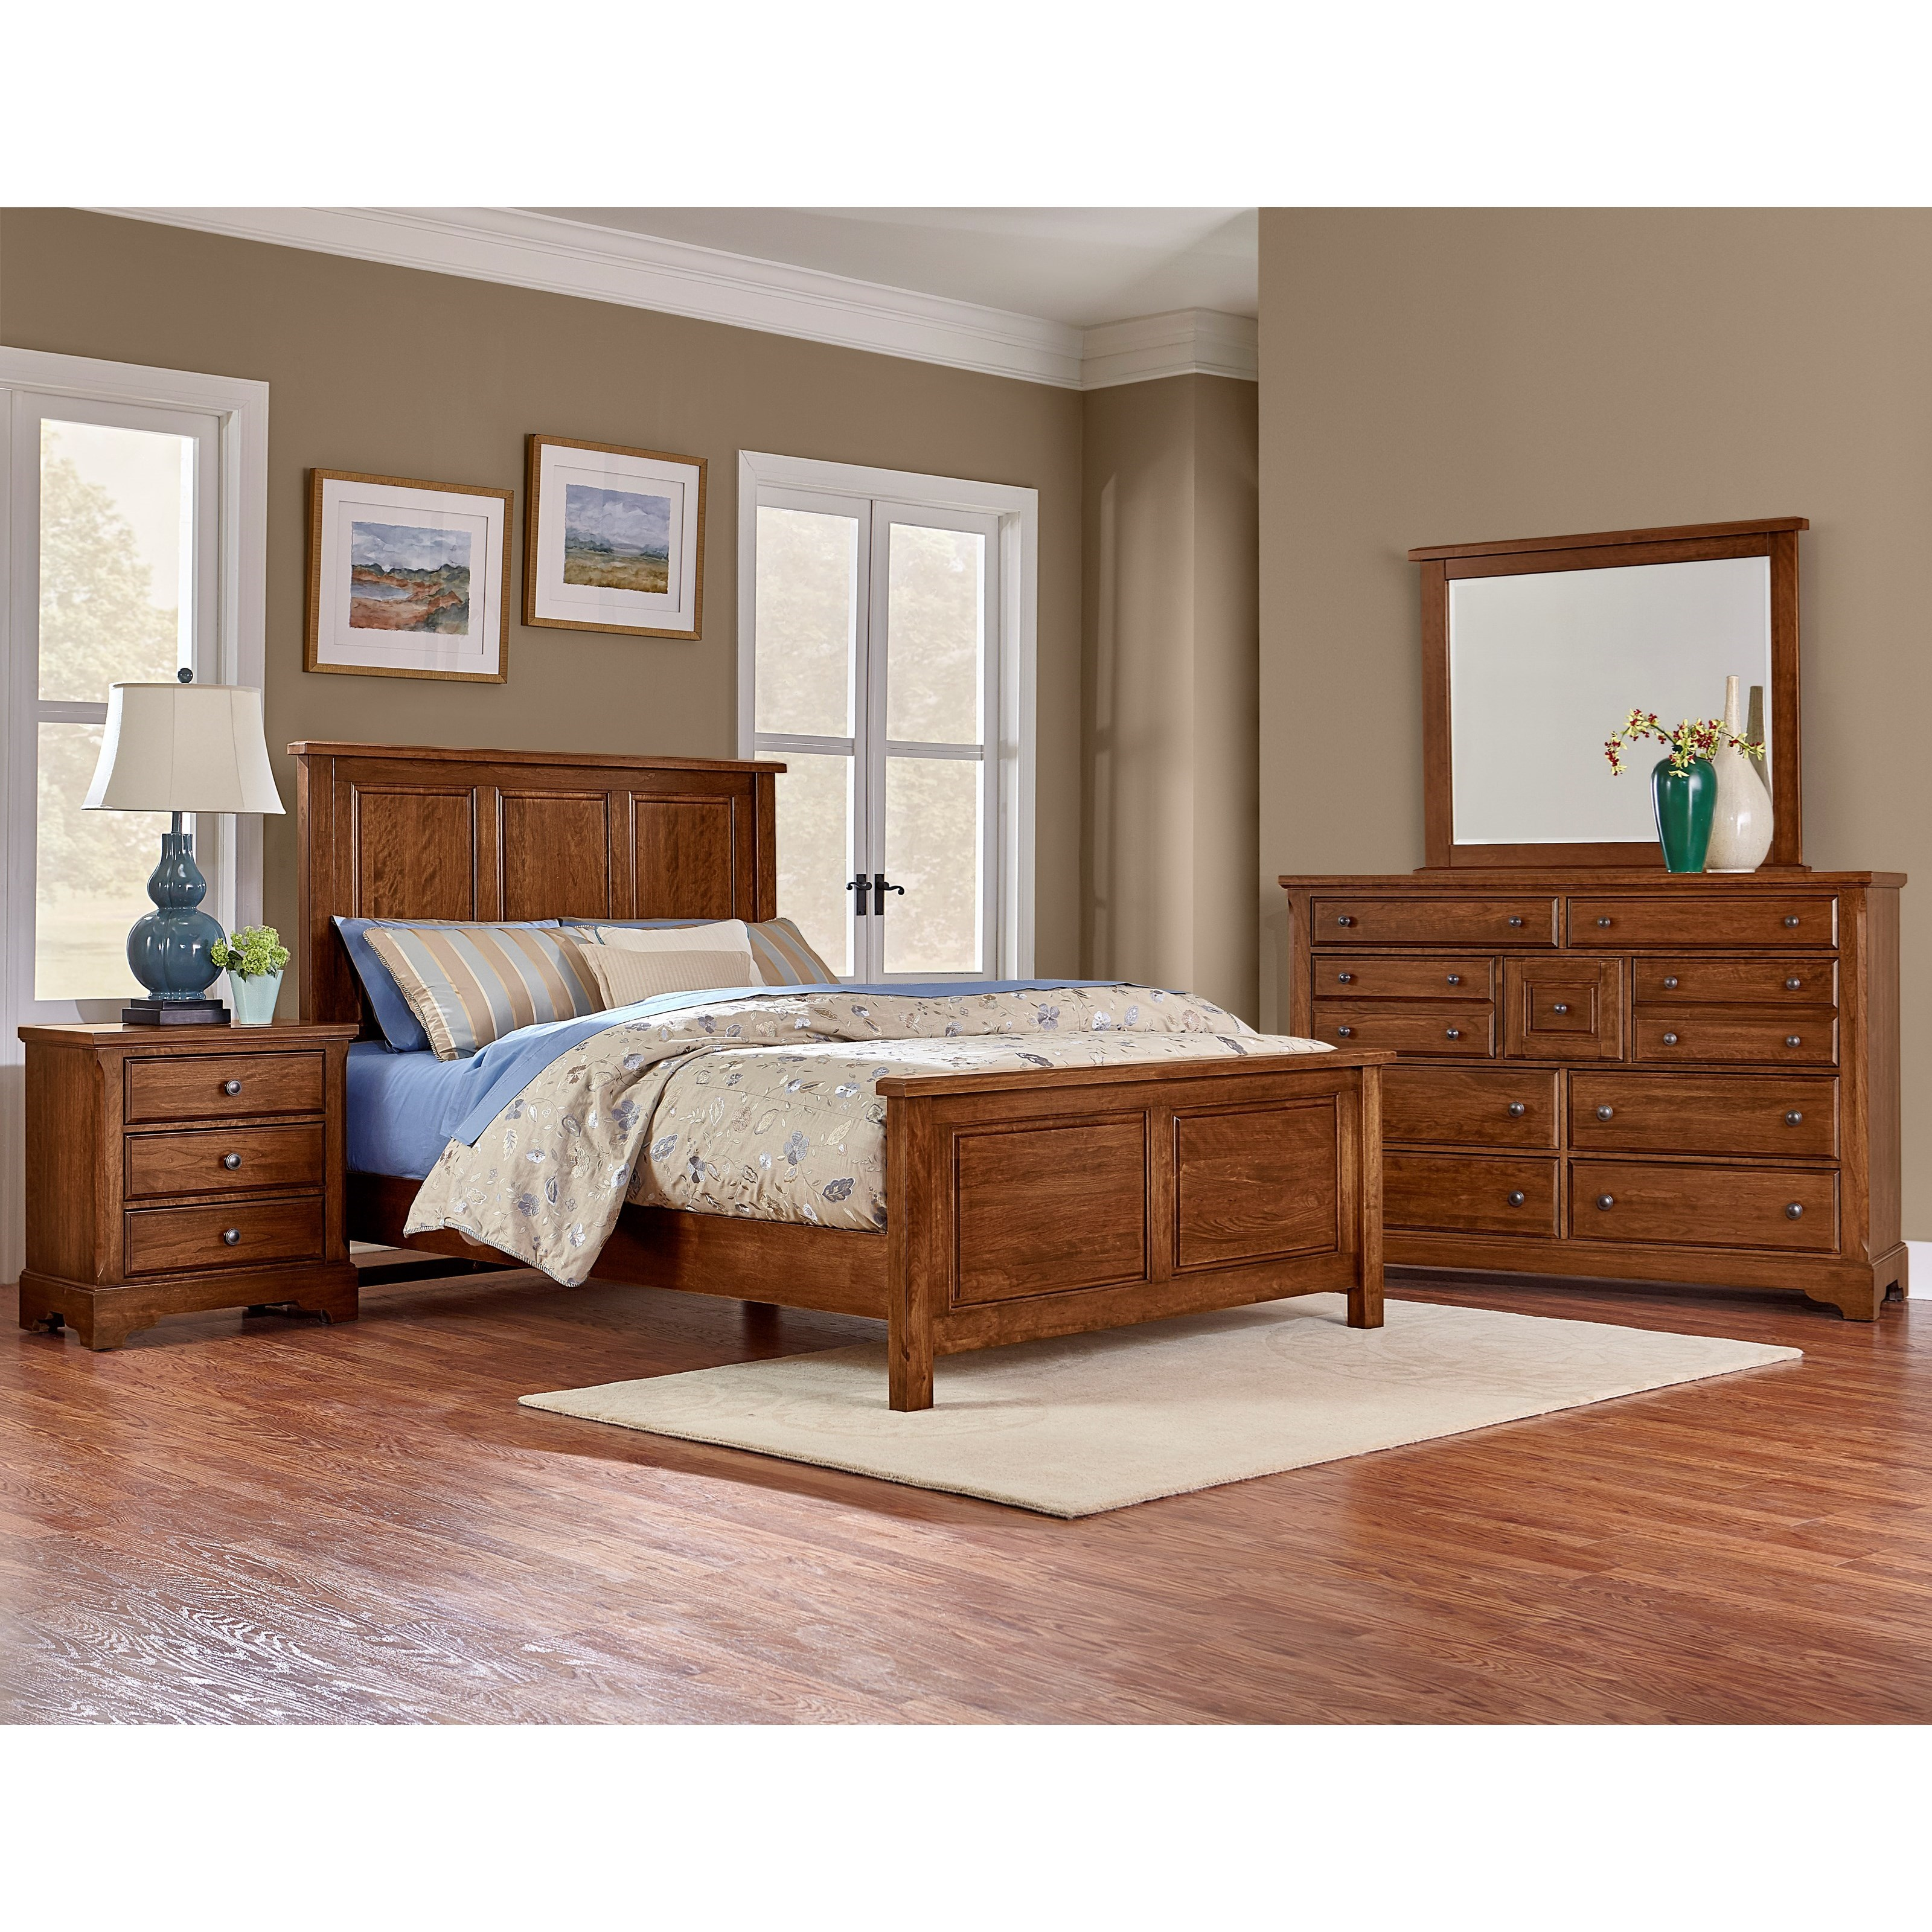 Artisan & Post Artisan Choices King Bedroom Group - Item Number: 100 K Bedroom Group 8